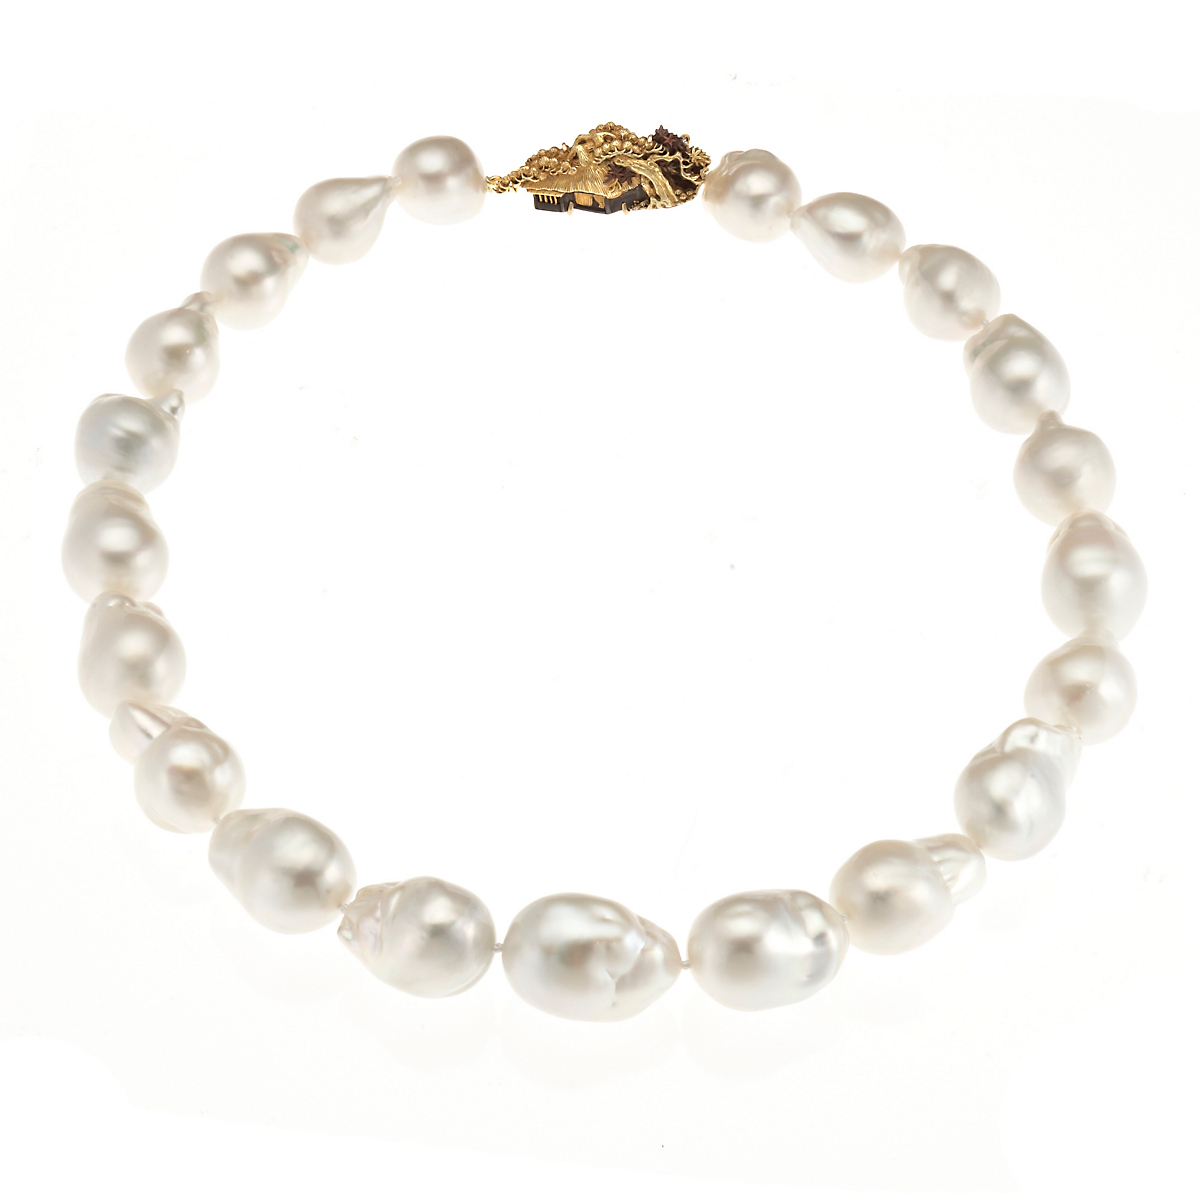 Gump's White Baroque South Sea Cultured Pearl & Menuki Necklace